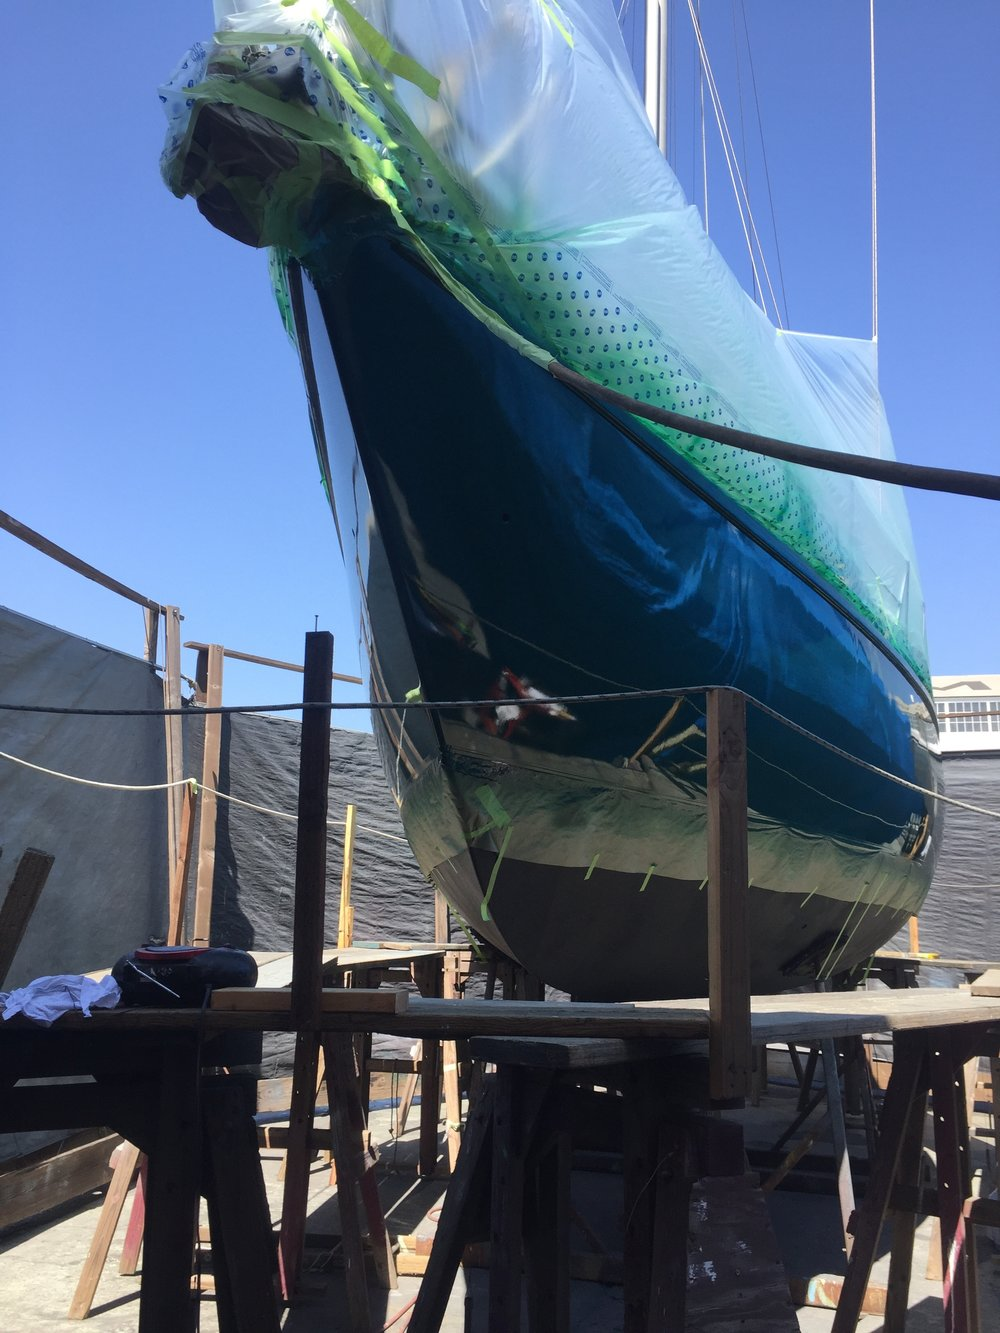 the-finest-yacht-coating-service-svendsens-bay-marine-sf-bay-area.JPG